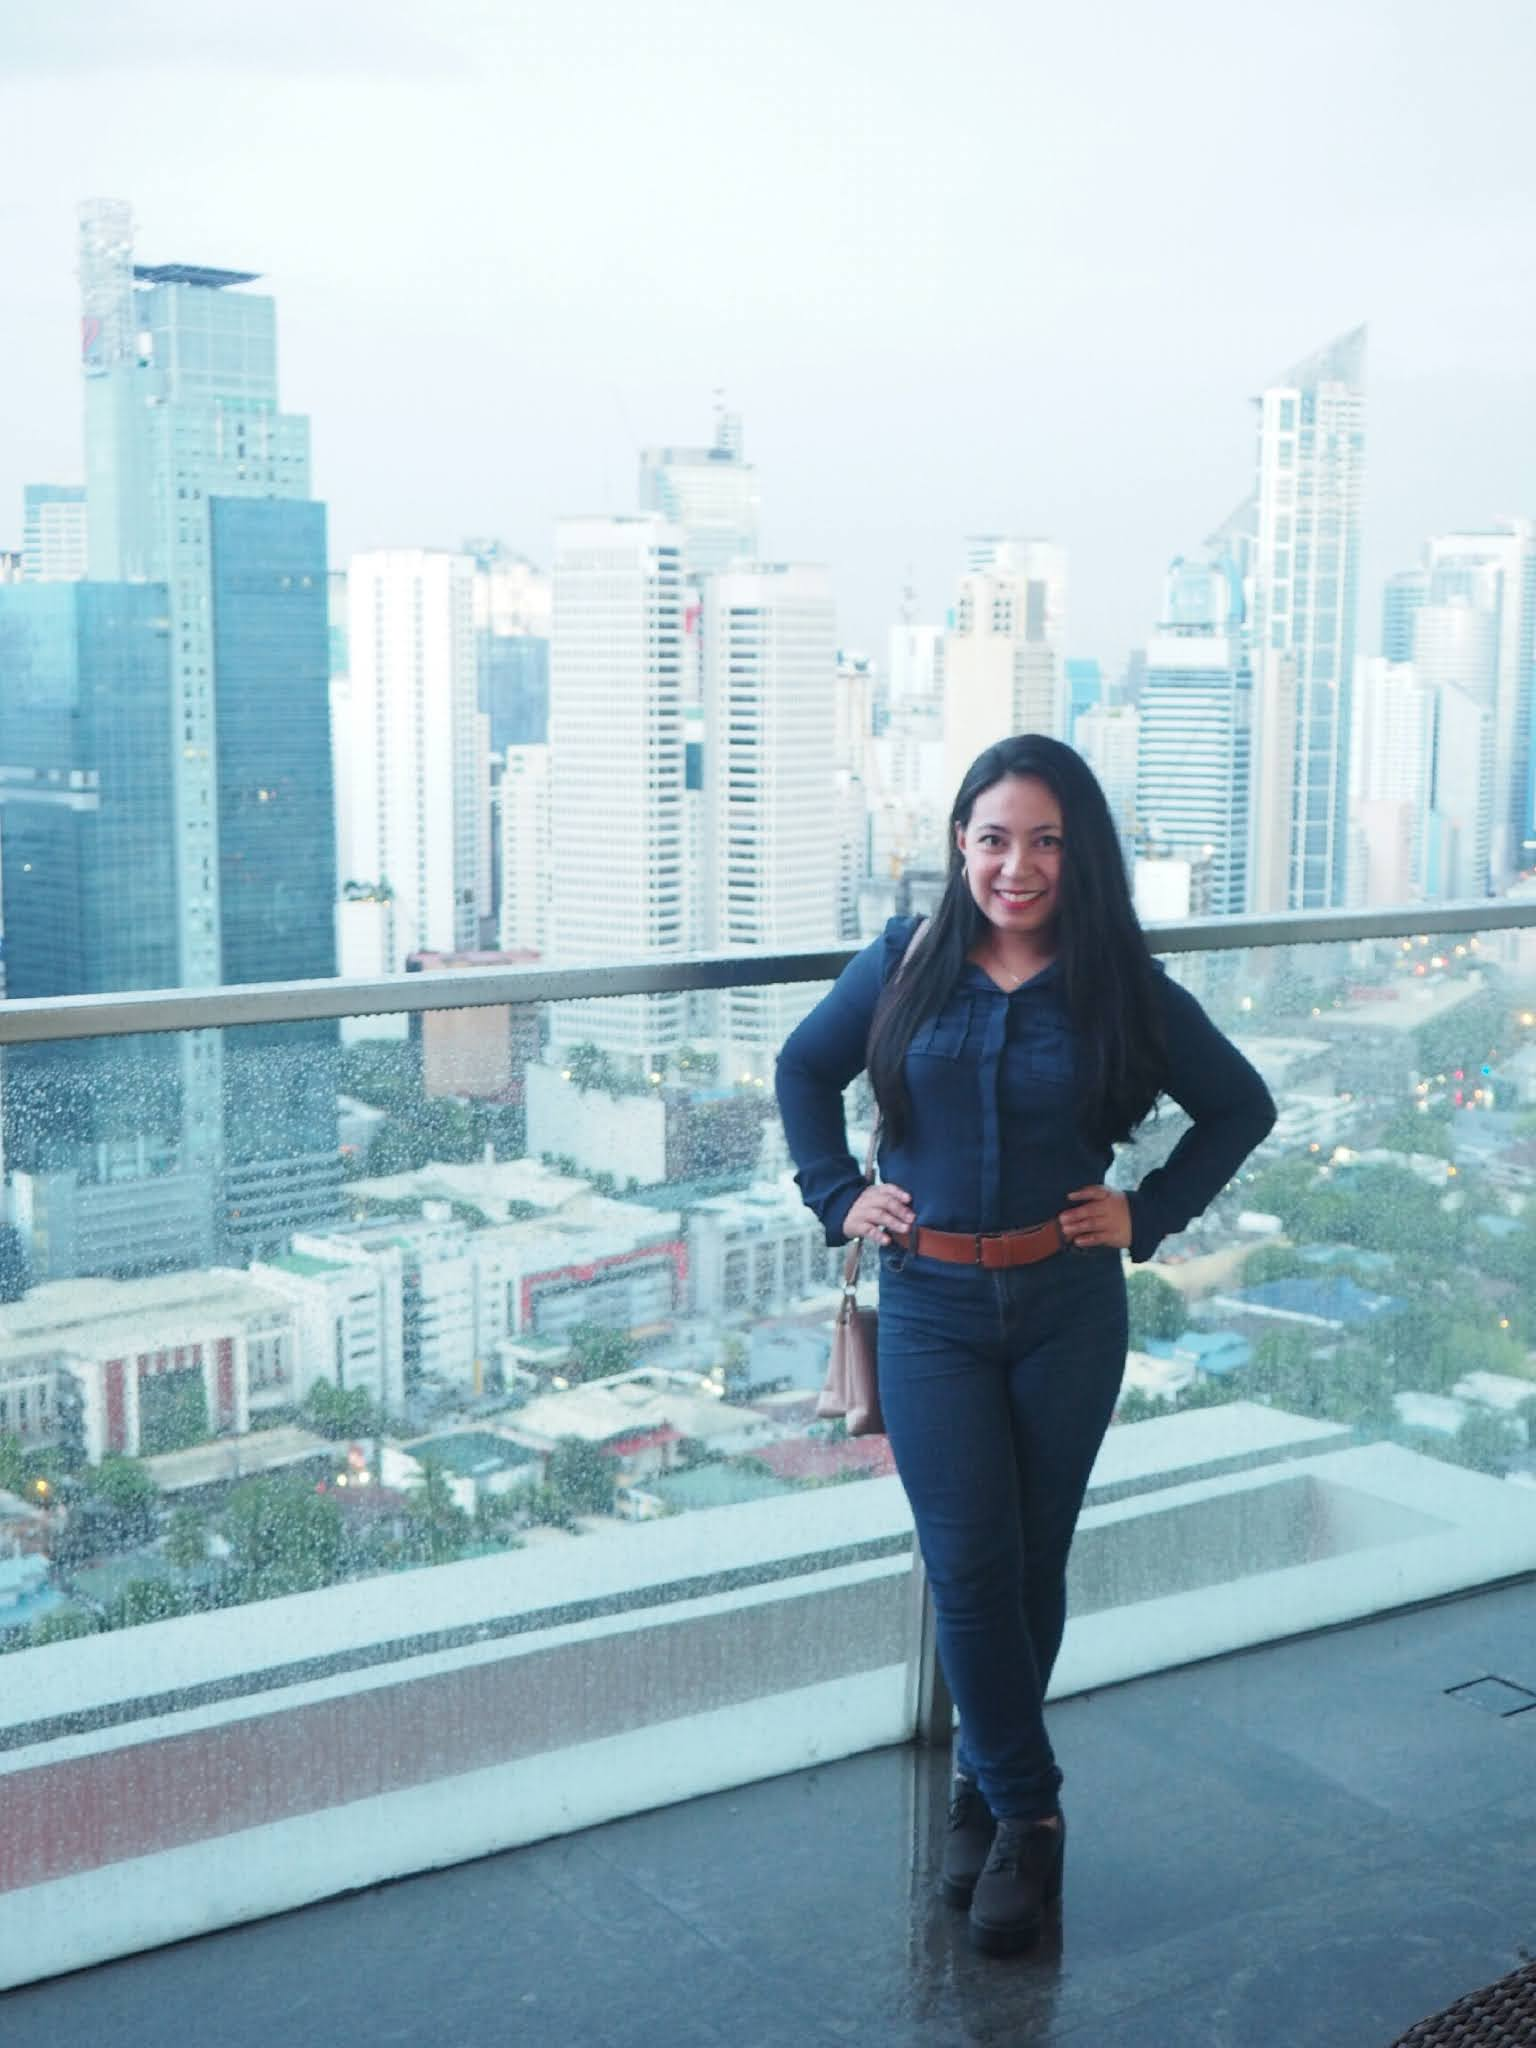 Vinatraveler S Blog City Garden Grand Hotel An Amazing Valueable 4 Star Hotel To Stay In Makati